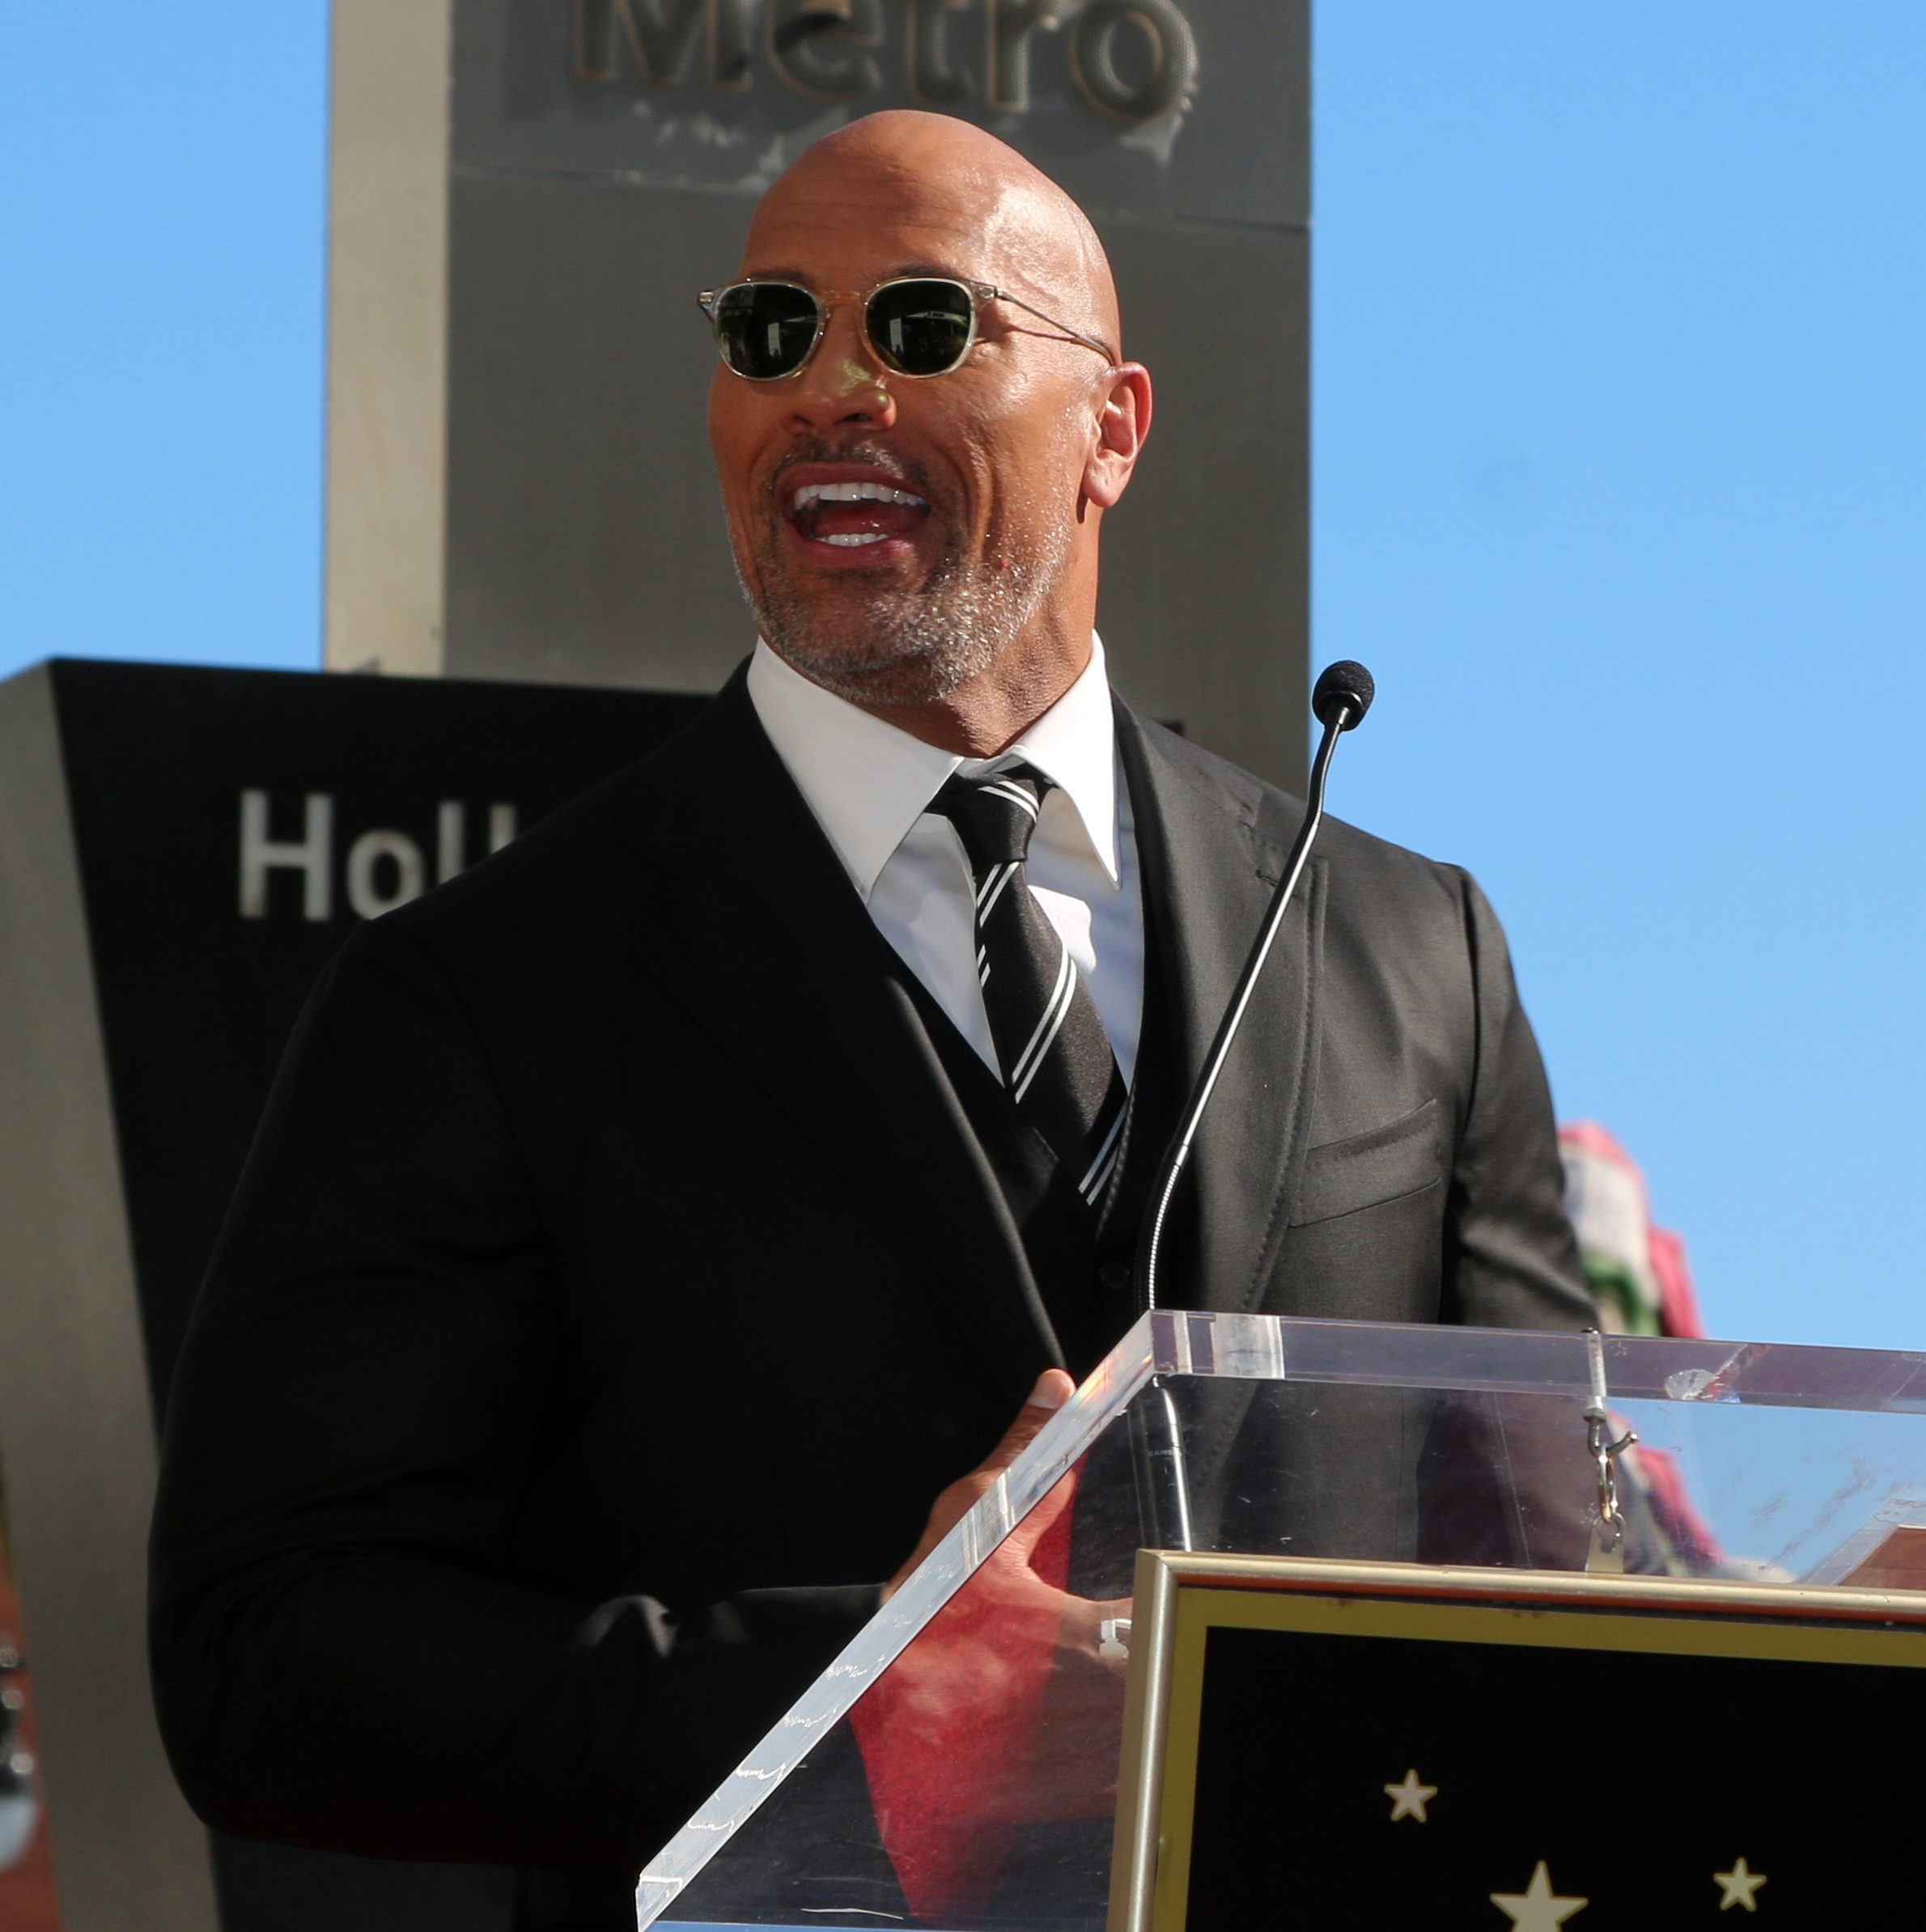 Dwayne Johnson at podium making speech